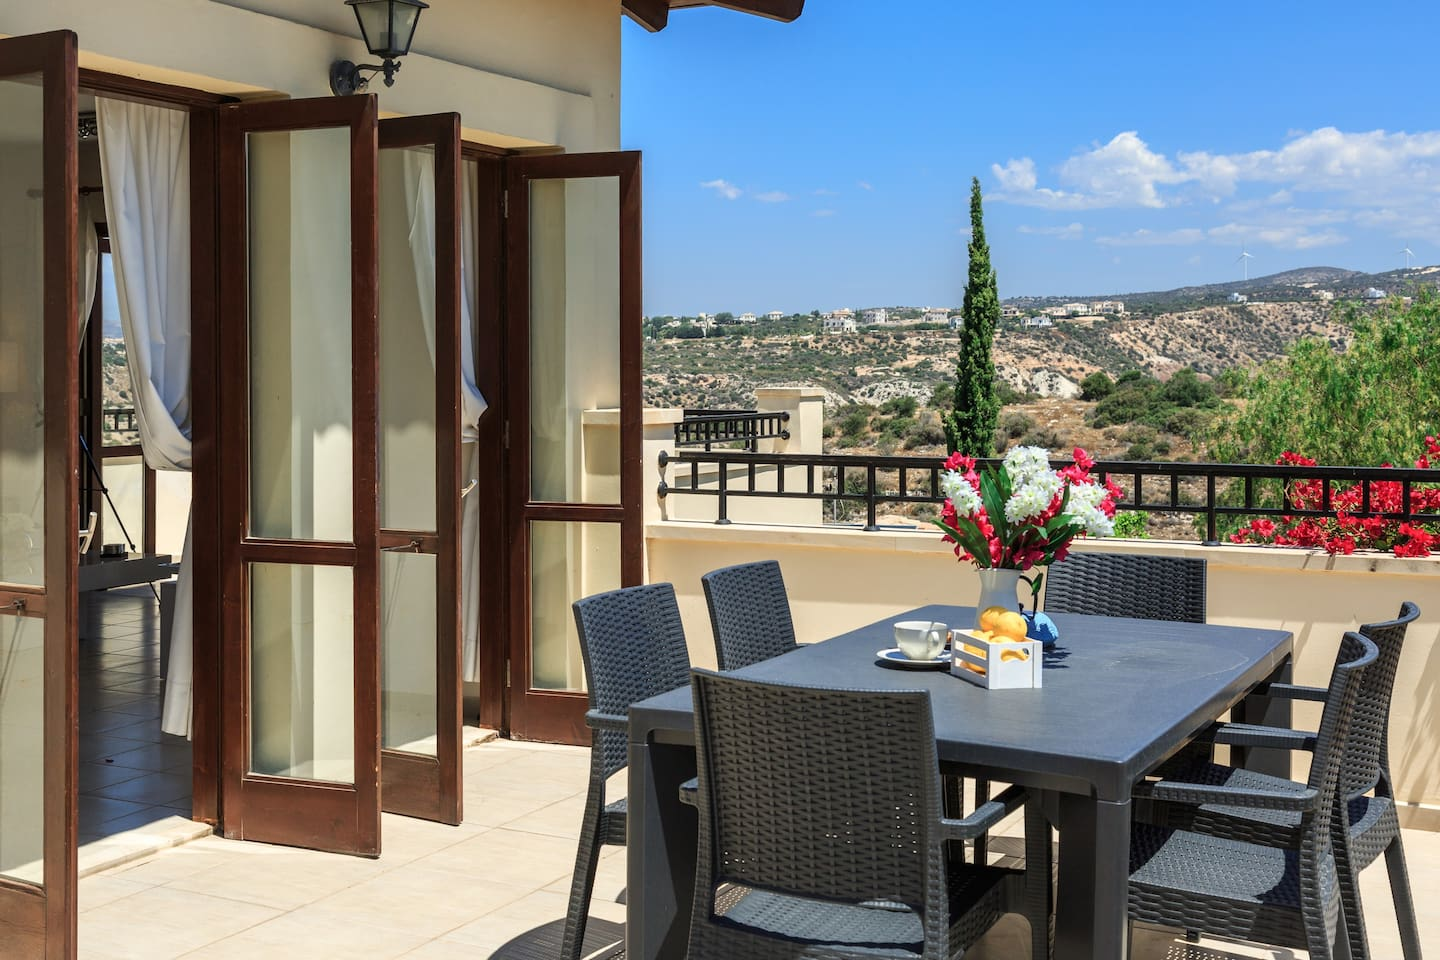 Relax, eat al fresco or have a sundowner and enjoy the gorgeous views of the Troodos Mountains